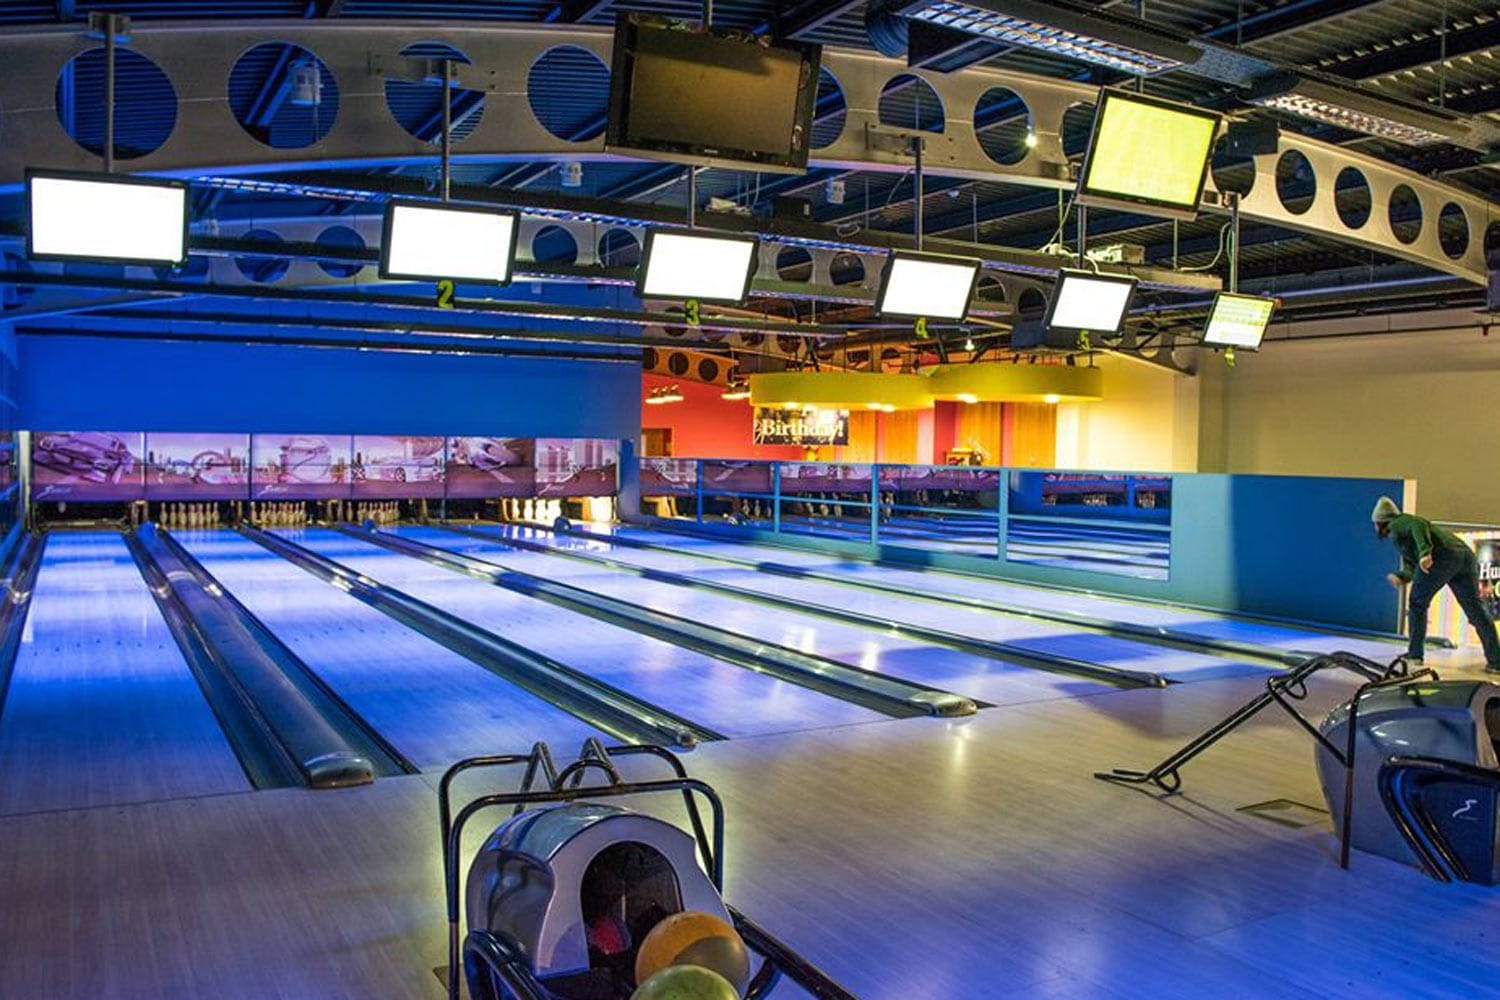 Bowling i Carrick on Shannon